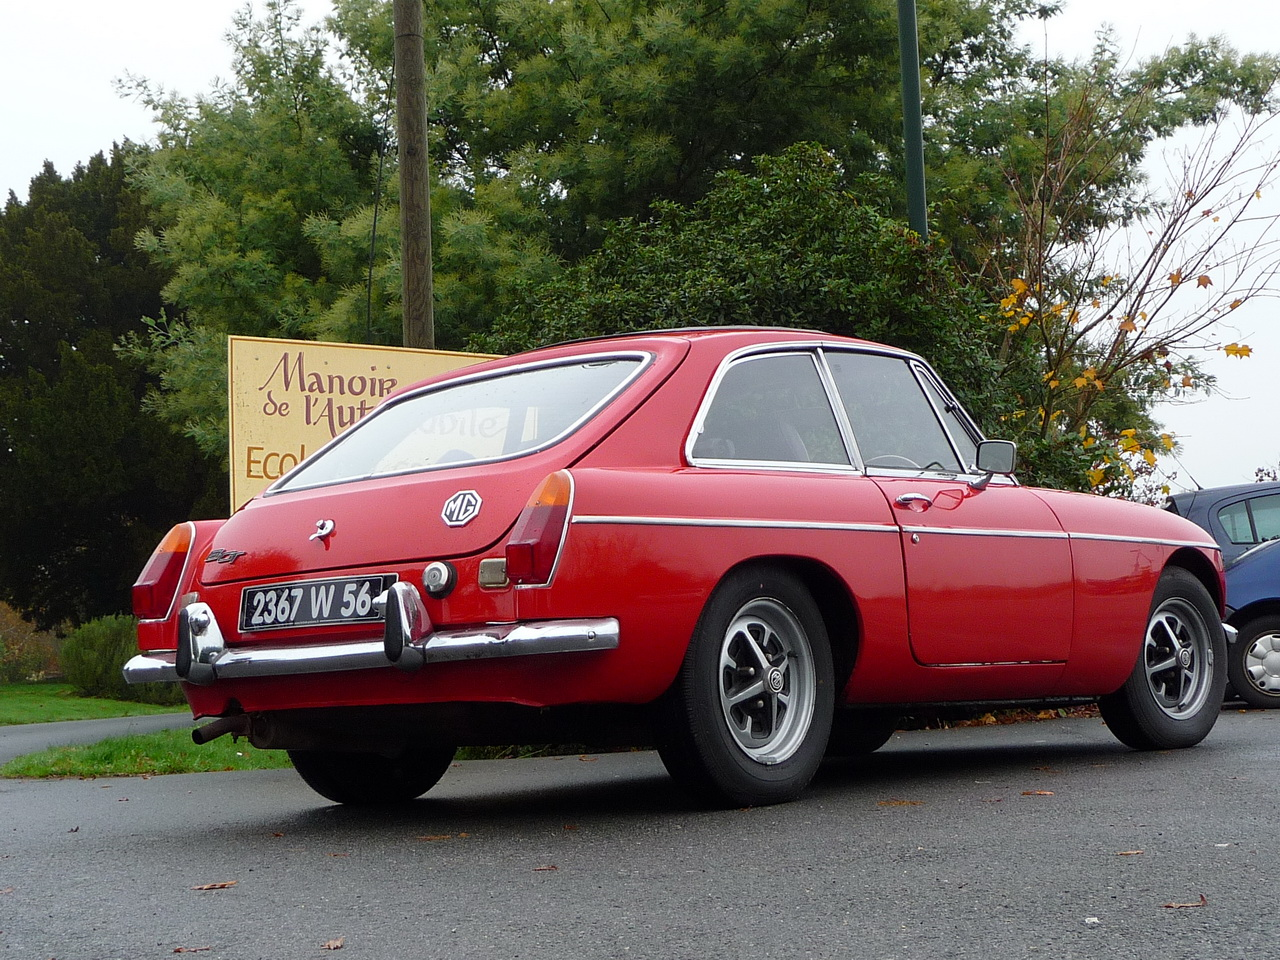 mg b gt 1971 flame red mgb gt occasion annonce vente video mgb gt british. Black Bedroom Furniture Sets. Home Design Ideas